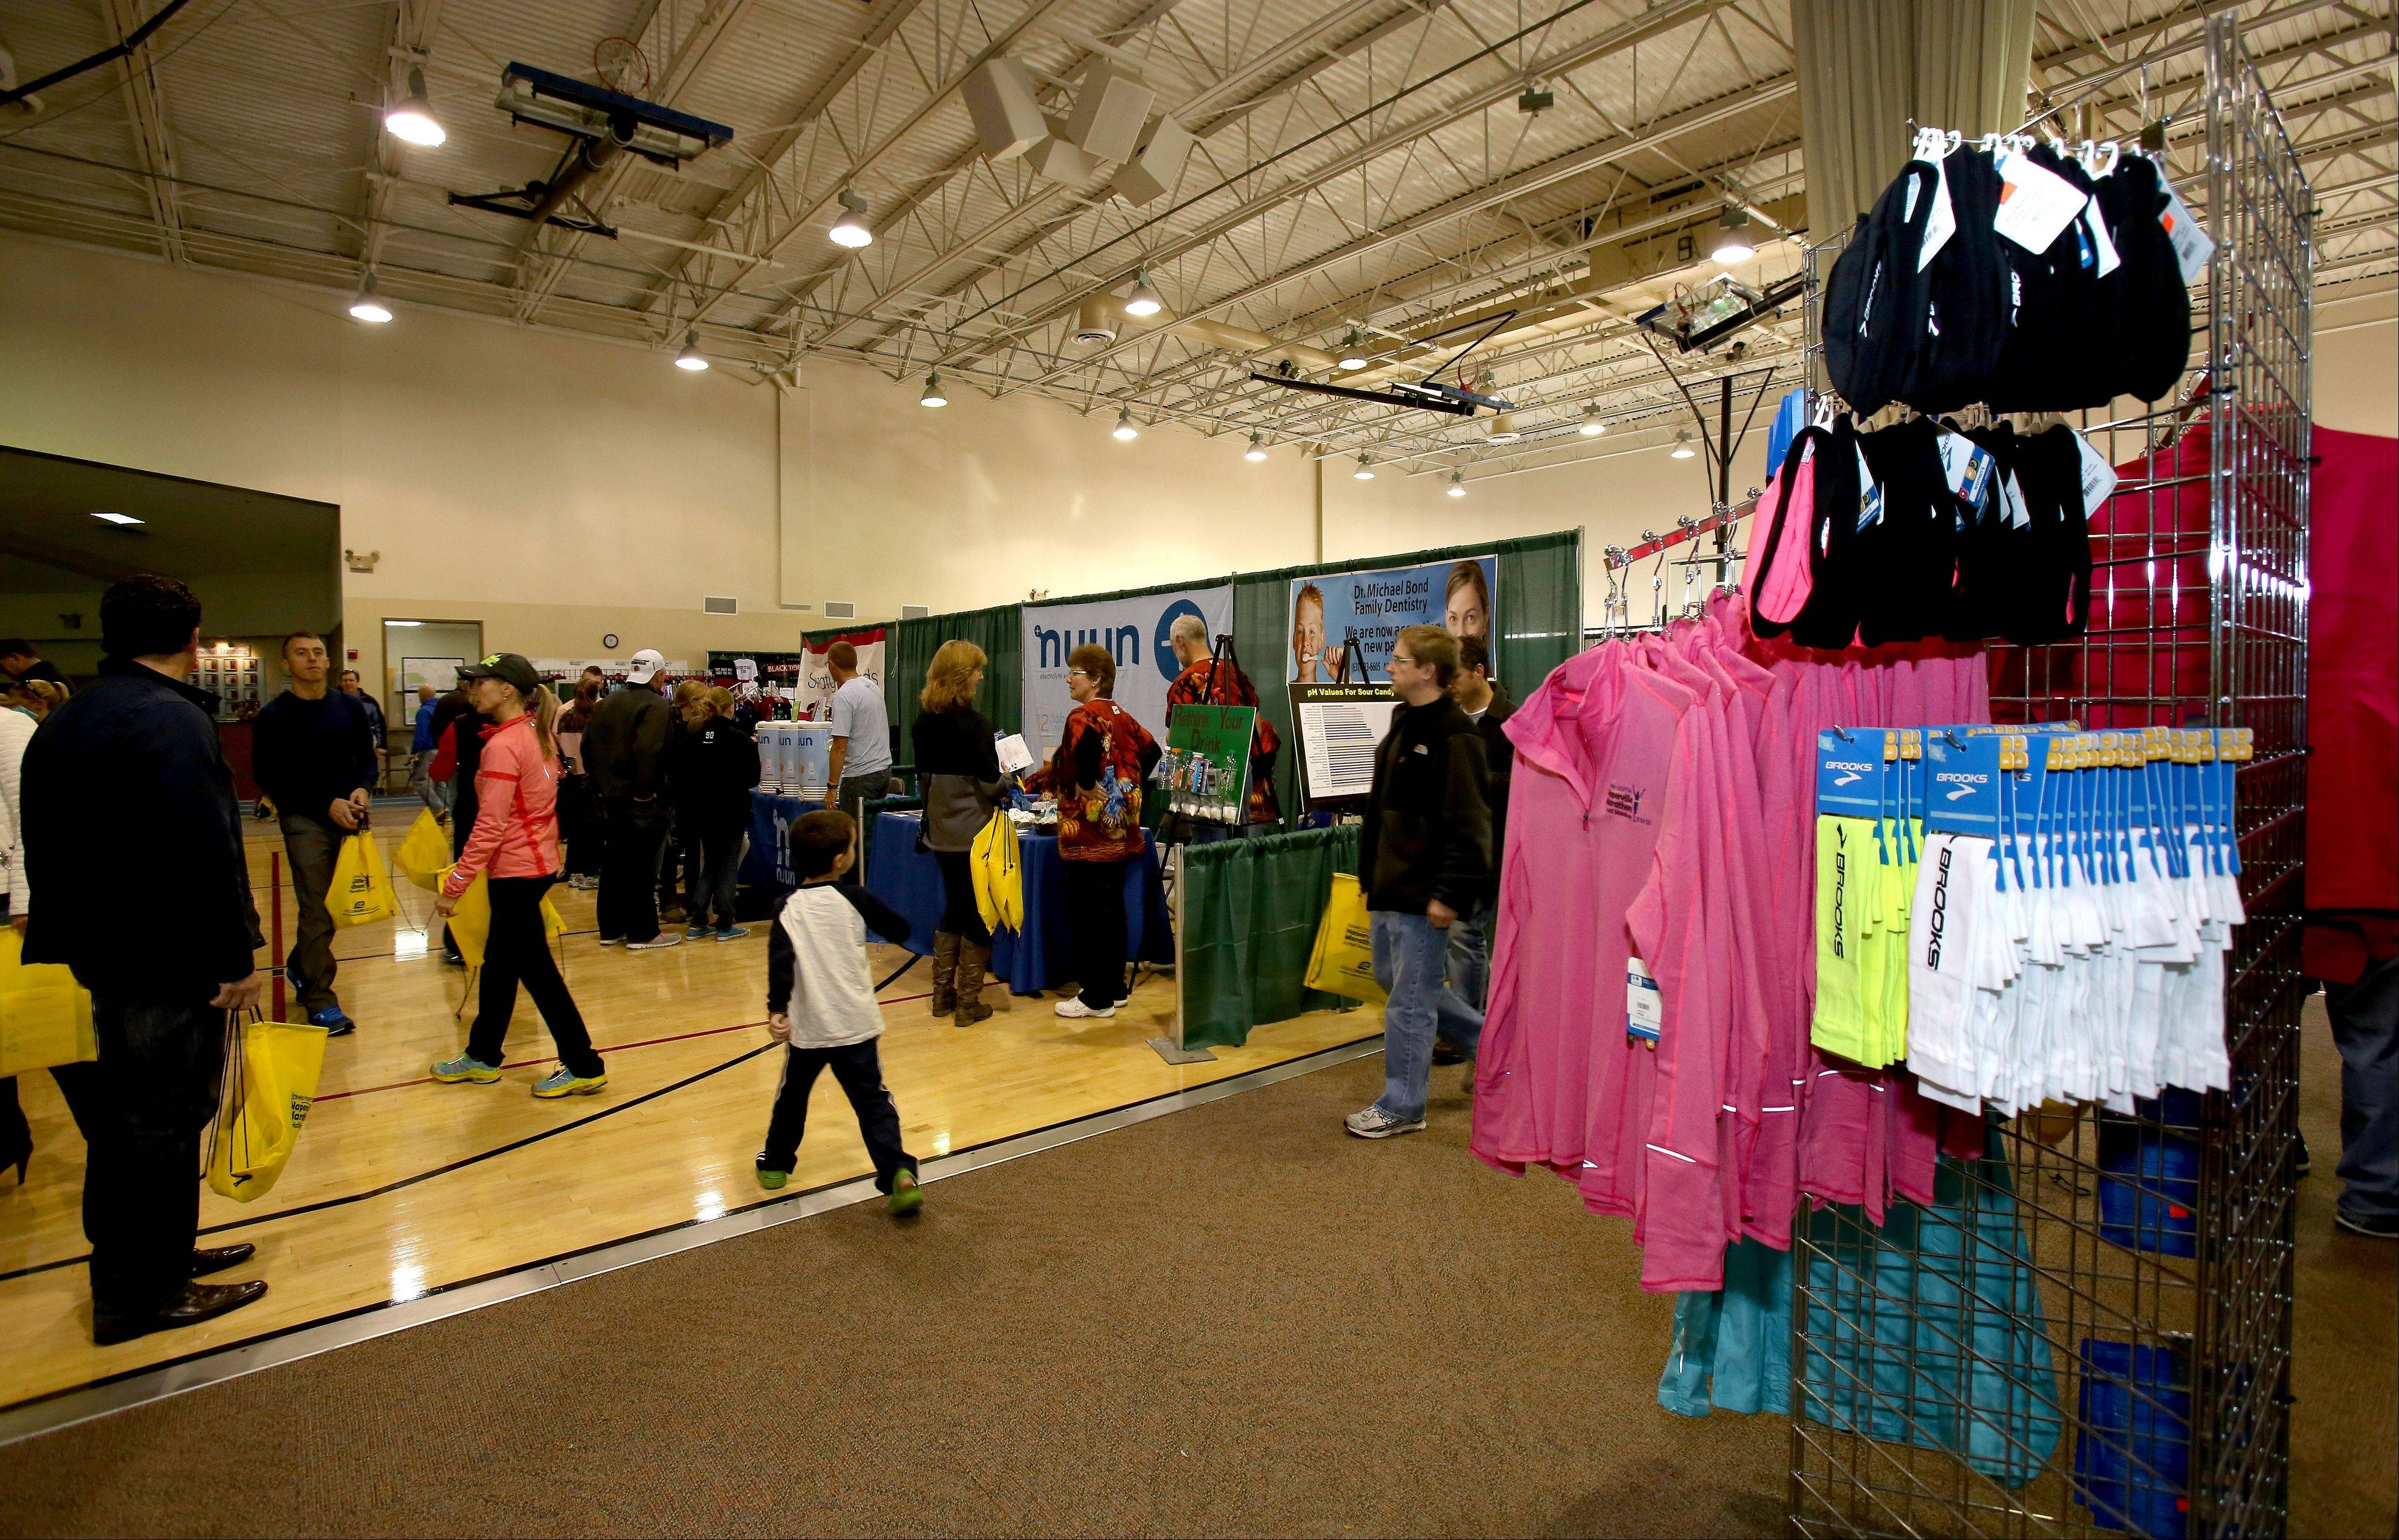 Racers who picked up their packets and last-minute gear at the race expo Friday and Saturday now are ready to run the inaugural Edward Hospital Naperville Marathon and Half Marathon. The race steps off at 7 a.m. Sunday from North Central College in downtown.